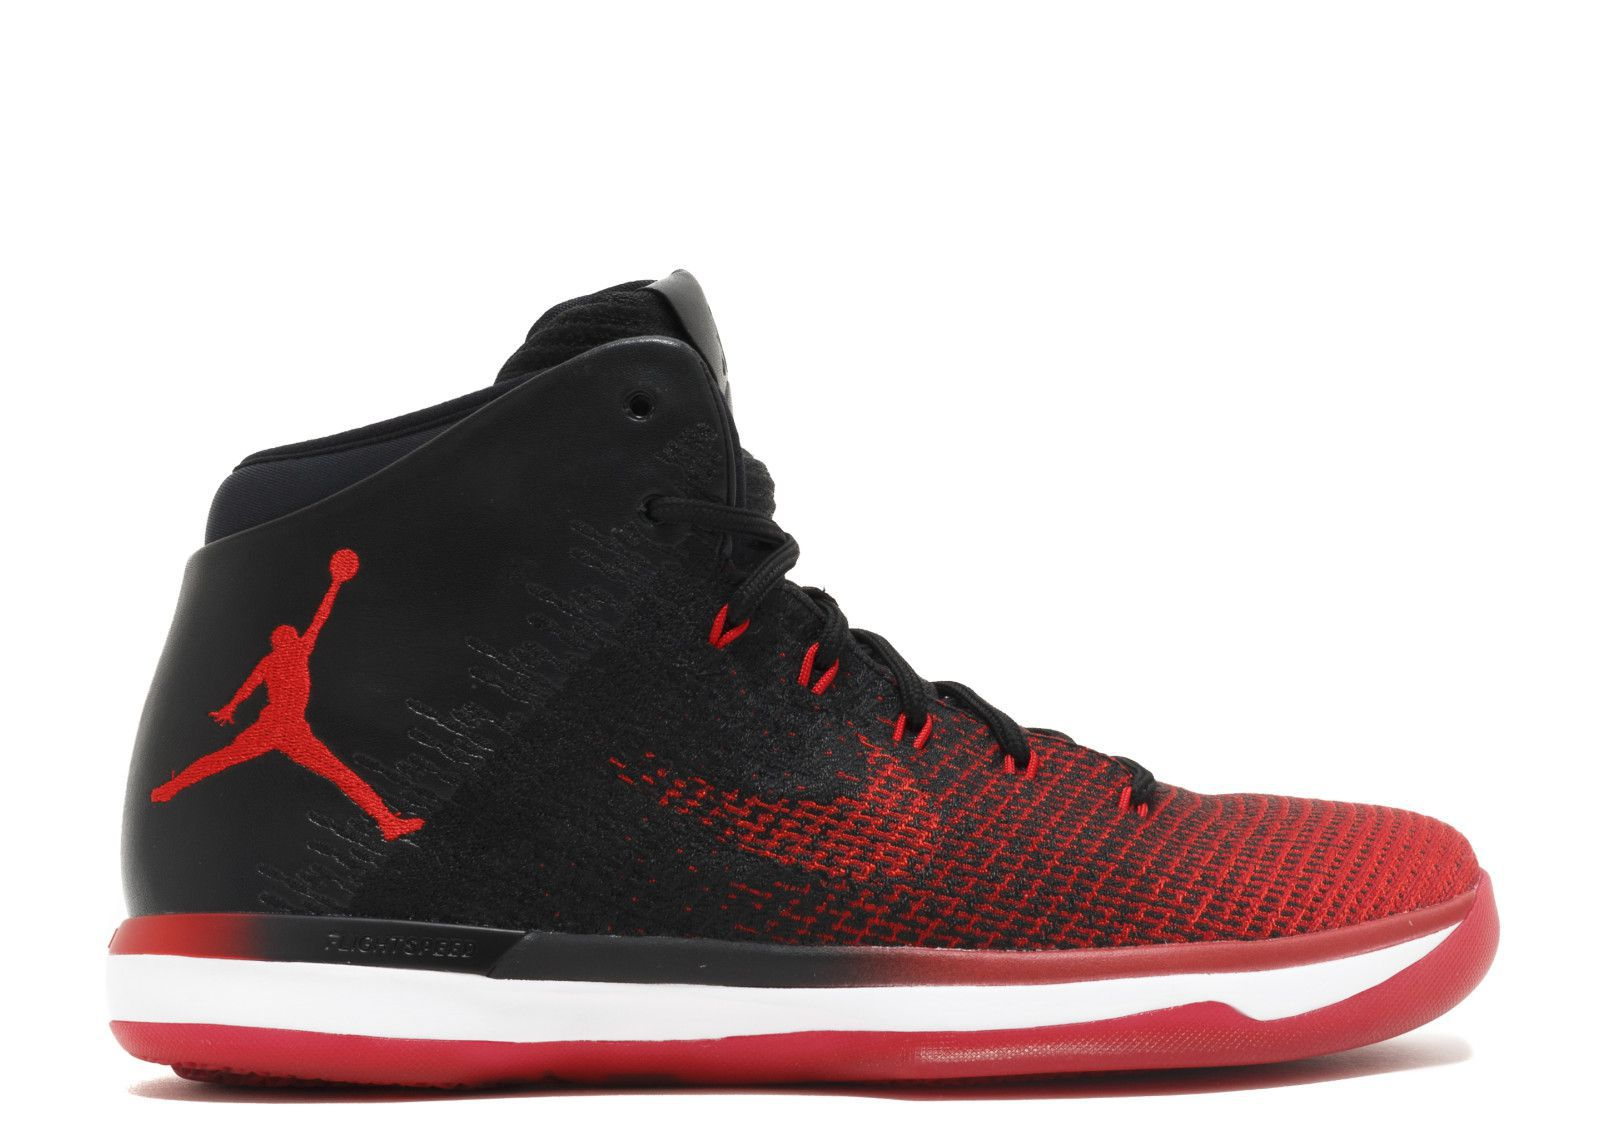 Nike 2018 Air Jordan 31 BANNED Multi Color Basketball ...